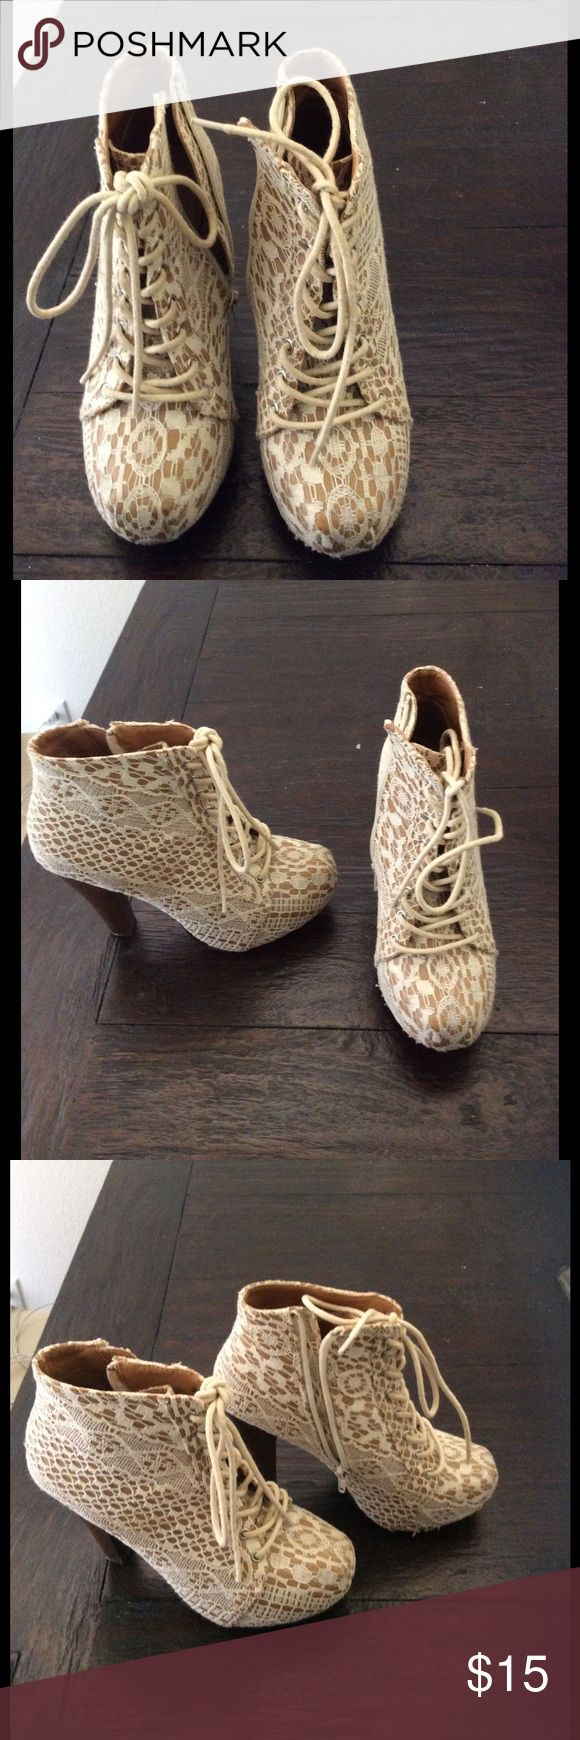 LACE BOOTIES✨✨ Gorgeous creme lace booties! In a size 6.5. Barely worn. Qupid Shoes Ankle Boots & Booties